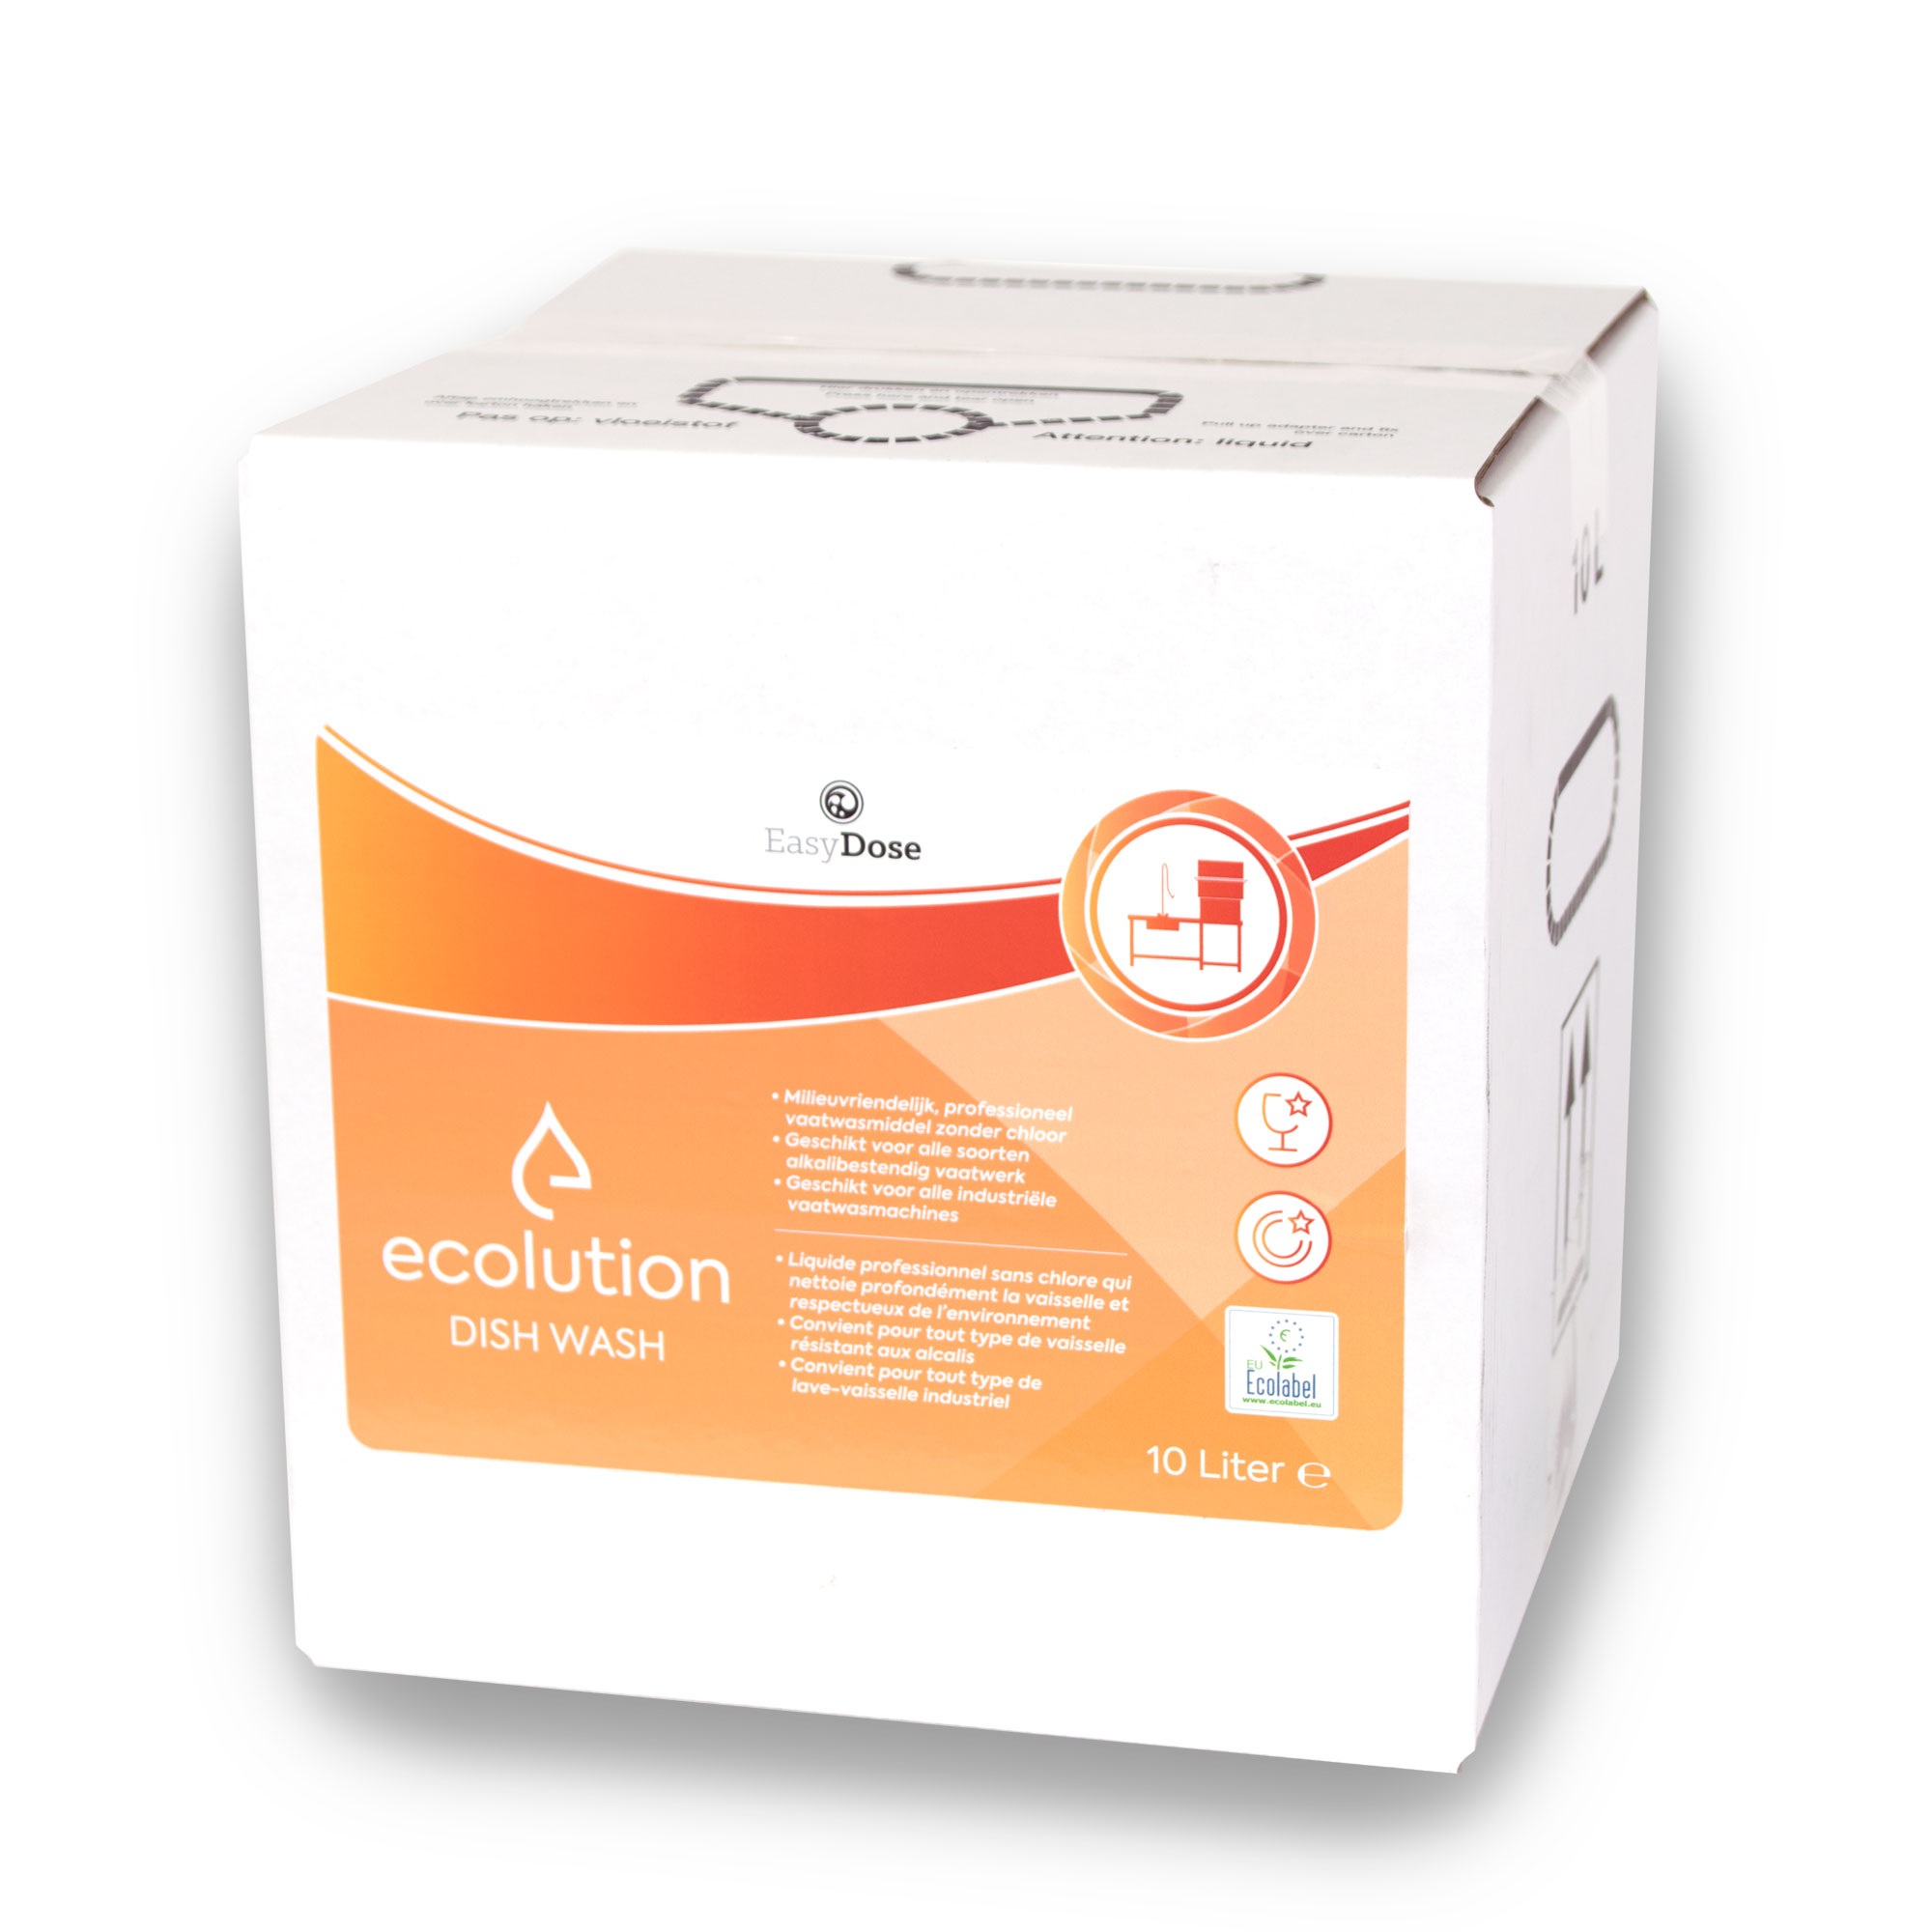 1035150_01 Ecolution Dish Wash ecolabel 10 liter BiB